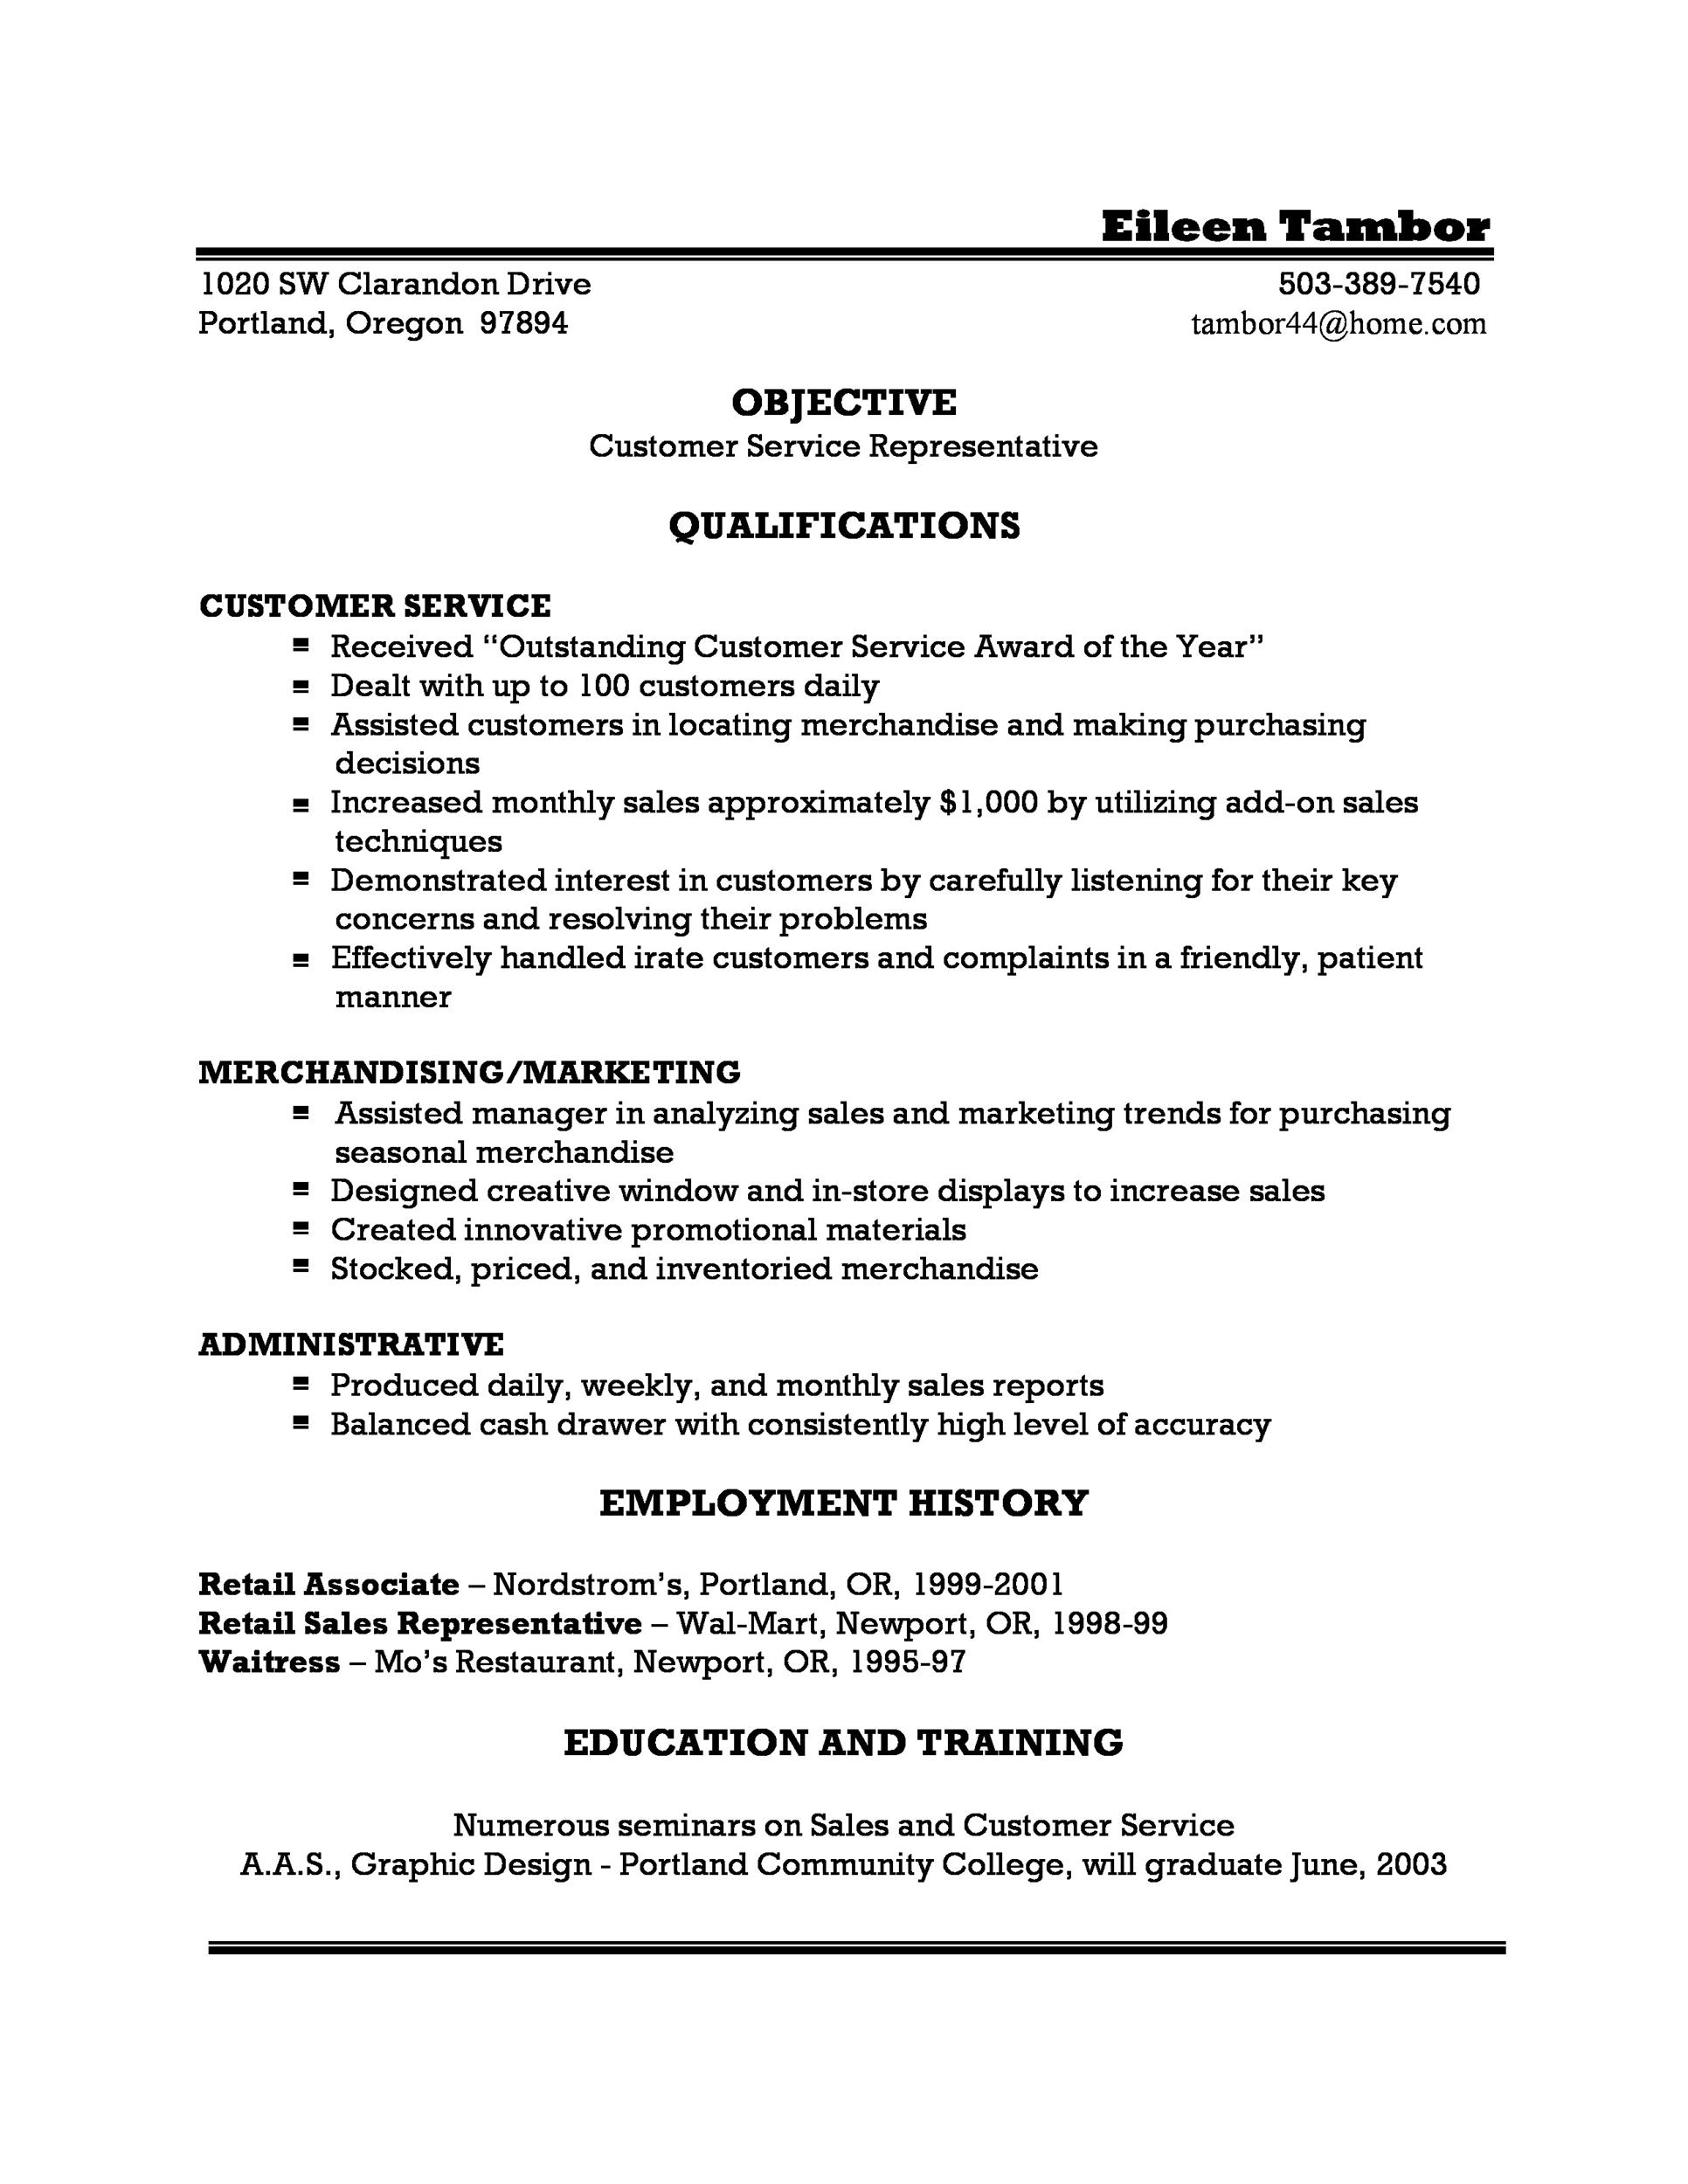 Printable Customer Service Resume Template 29  Objective For Customer Service Resume